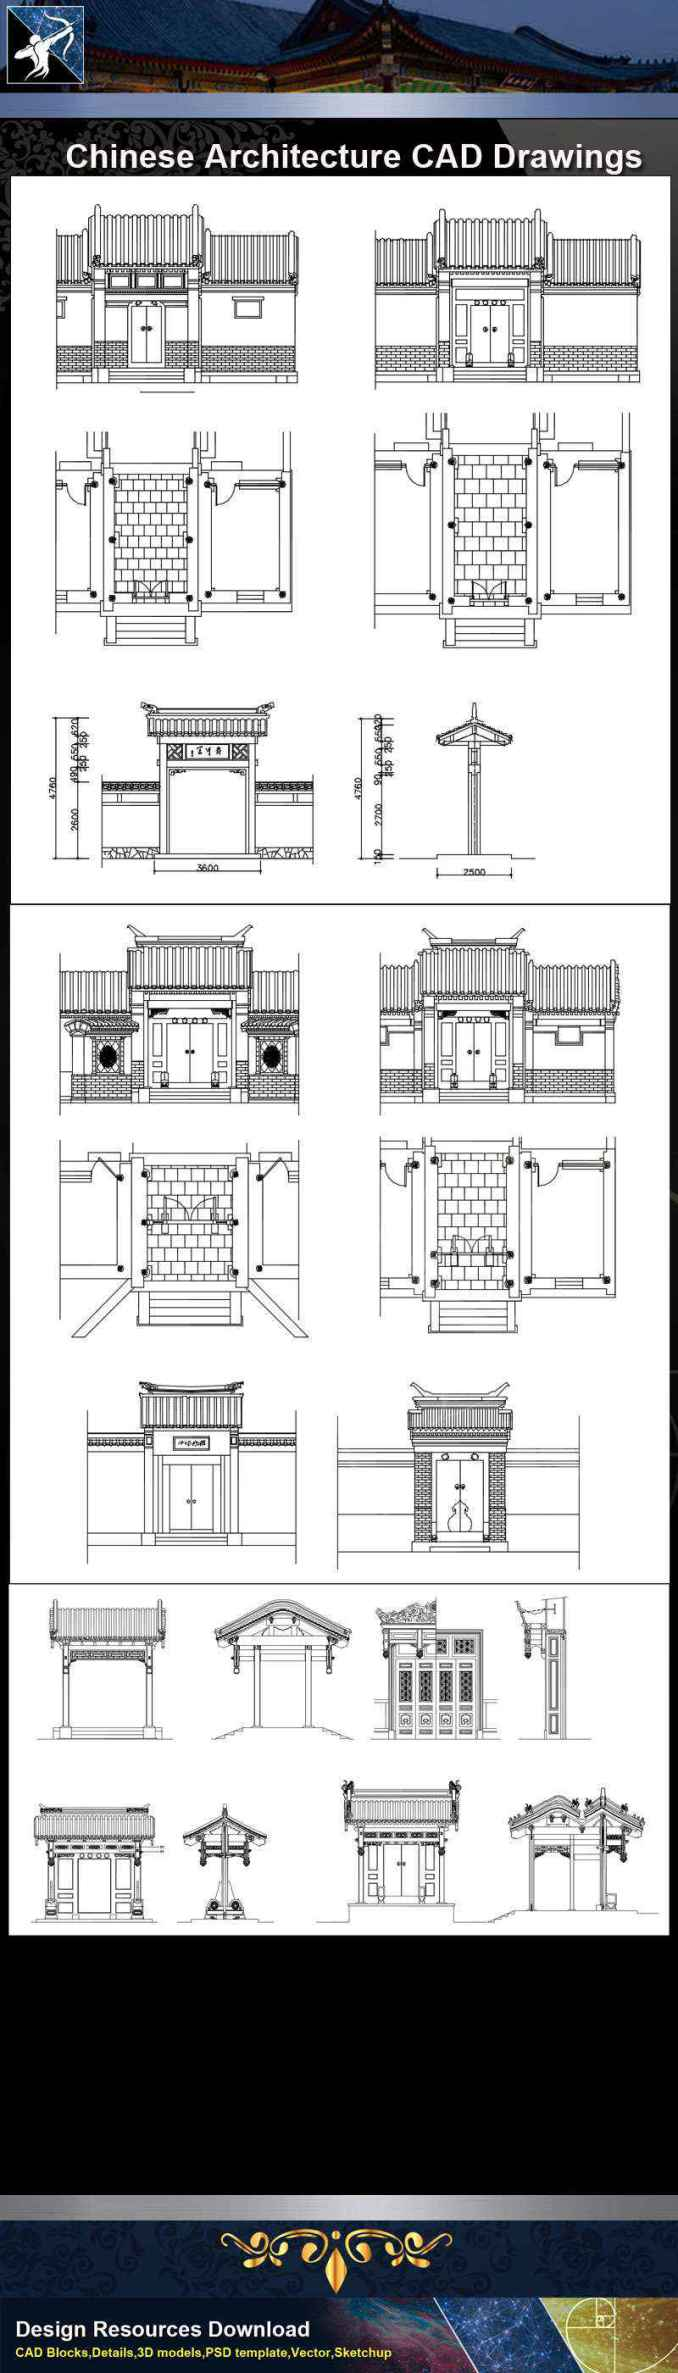 ★【Chinese Architecture CAD Drawings】@Chinese Gate,Door Design Drawings,CAD Details,Elevation